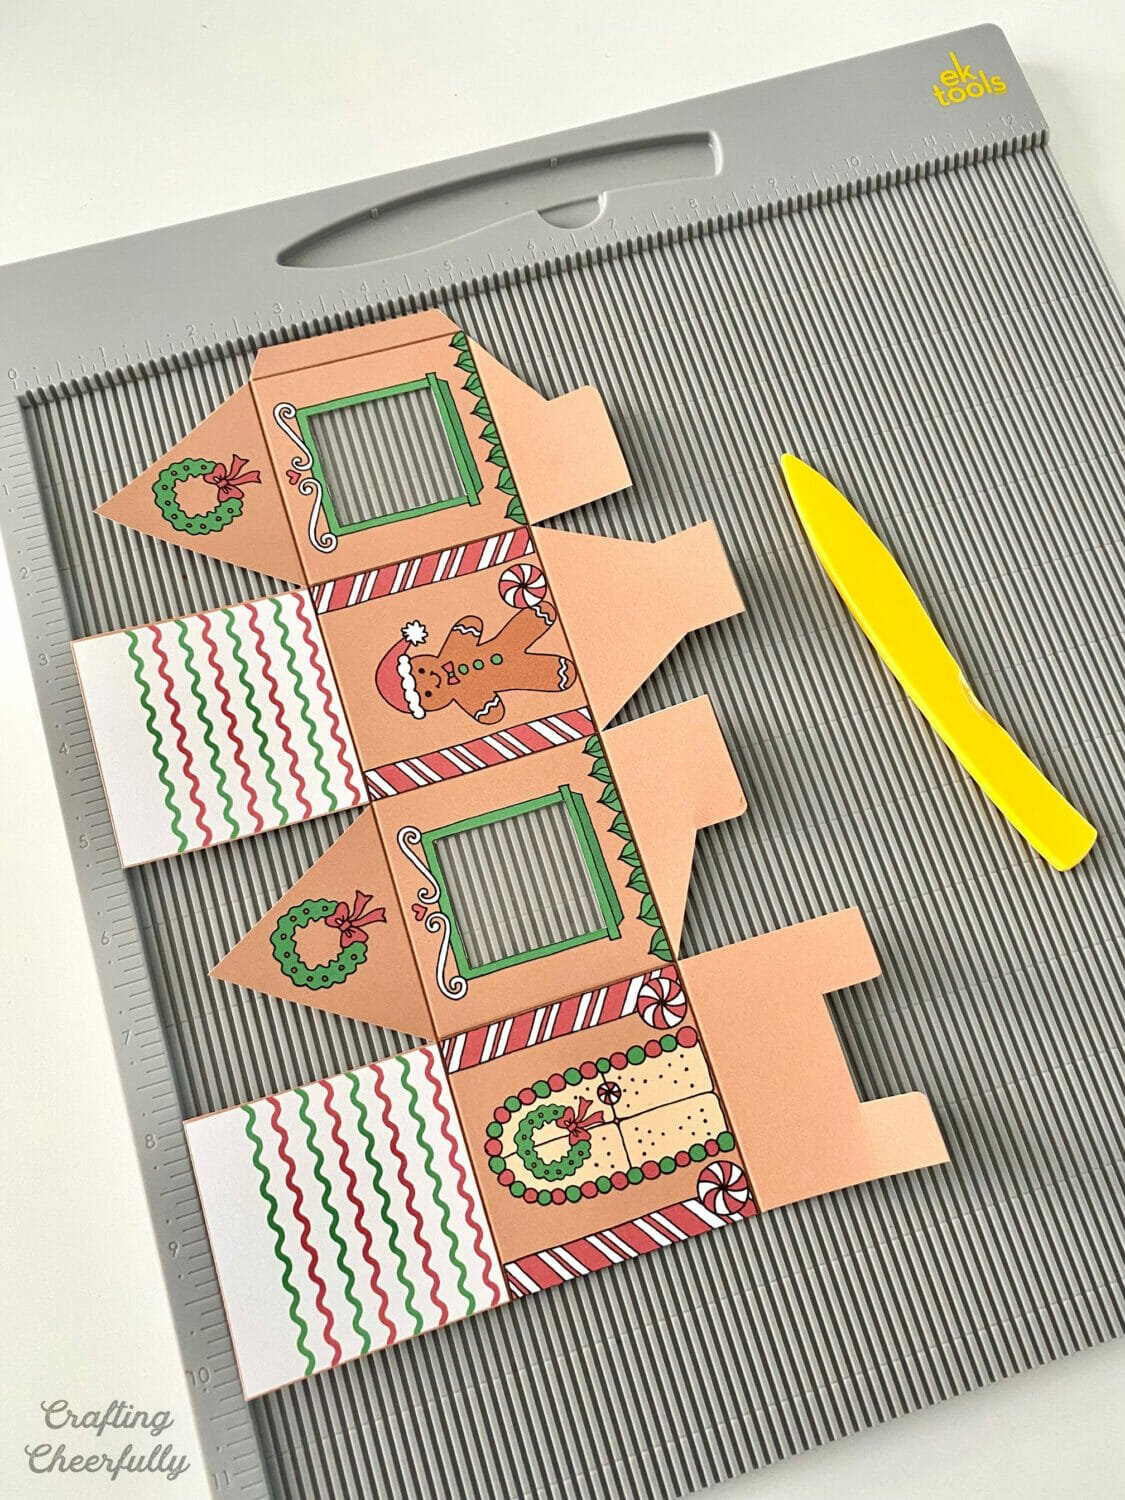 A printable gingerbread treat box is on a scoring board next to a yellow scoring stylus.